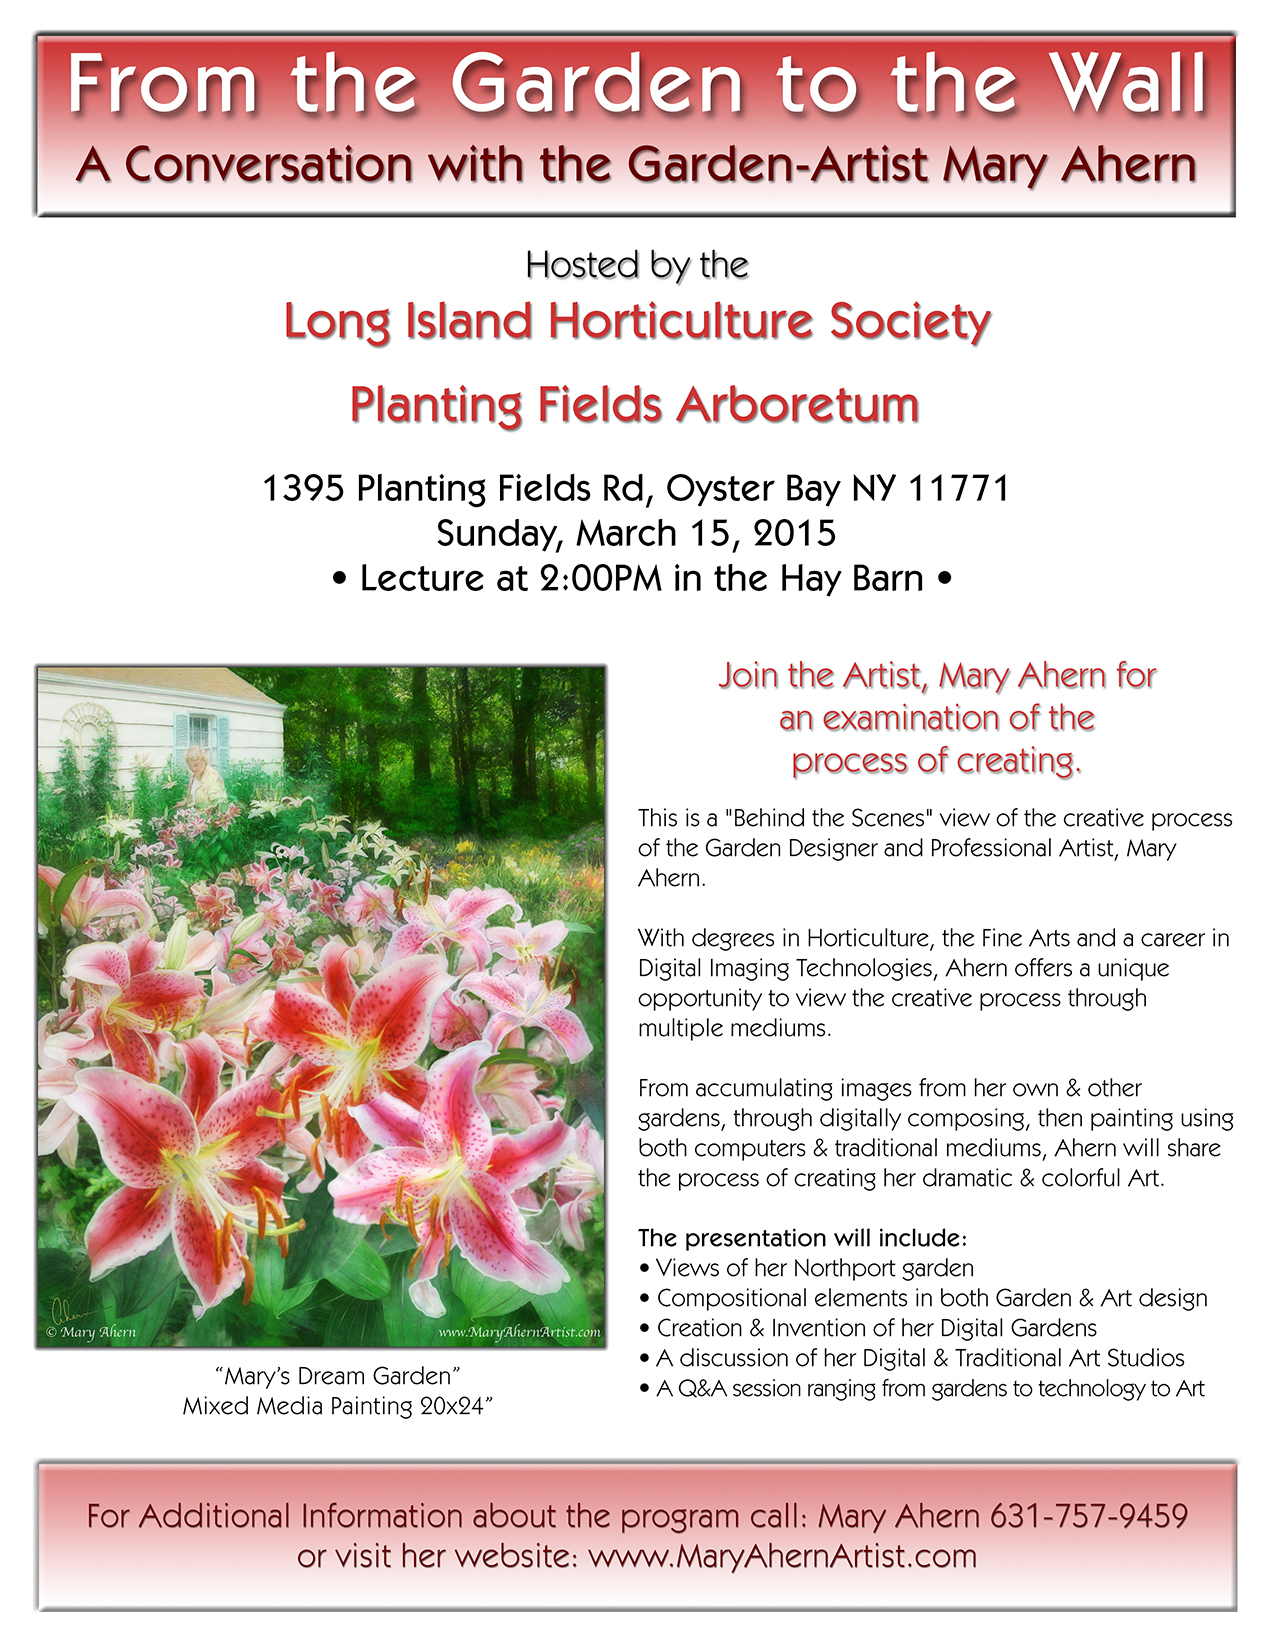 From the Garden to the Wall- Lecture by the Artist, Mary Ahern